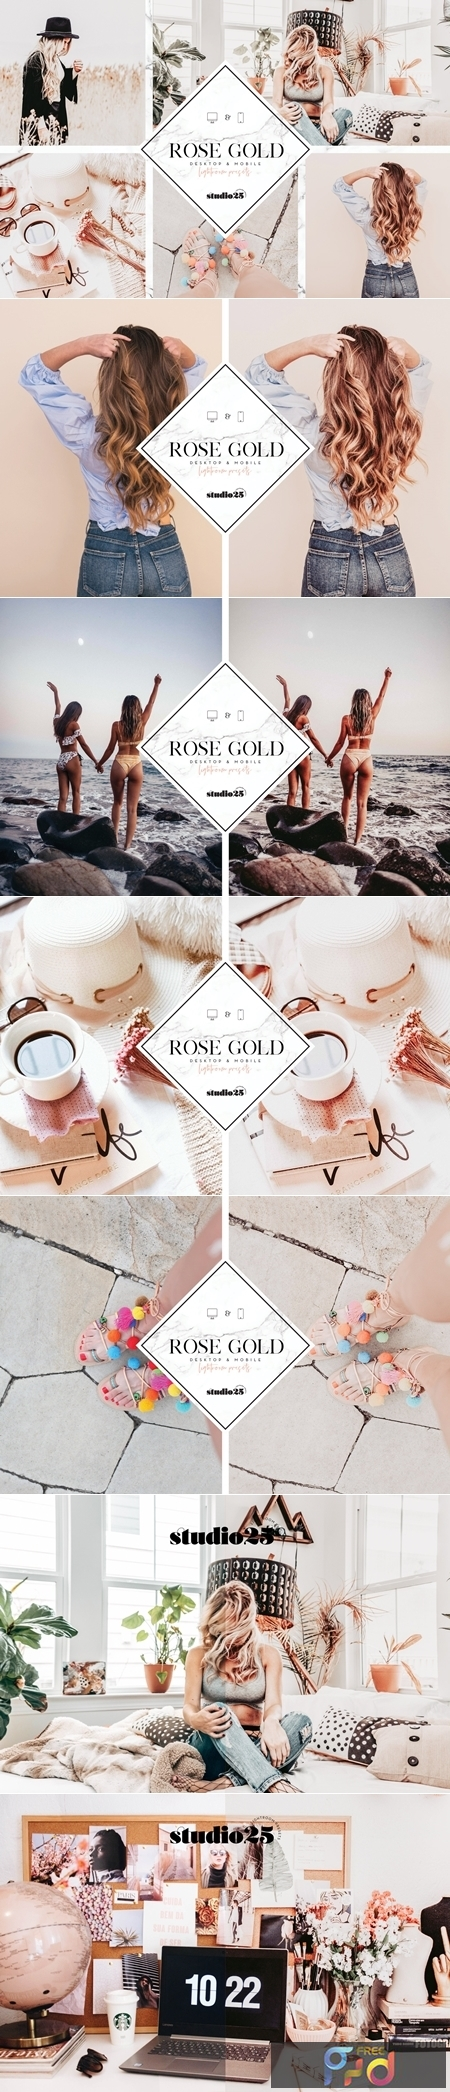 Rose gold lightroom preset 3781572 1